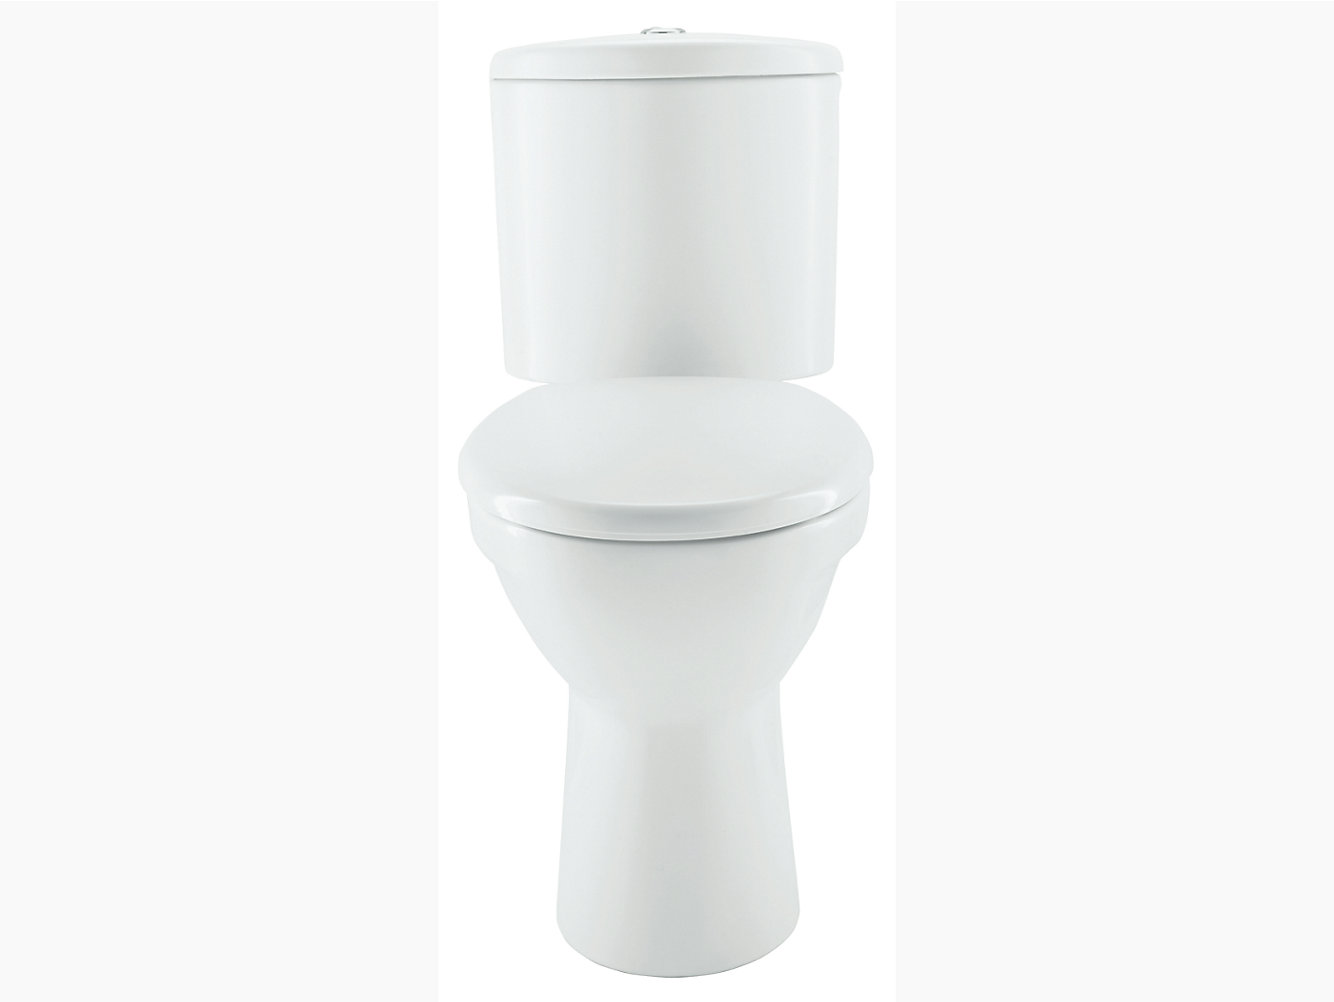 Patio Two Piece Toilet With Quiet Close Tm Seat And Cover K 3567in S Kohler